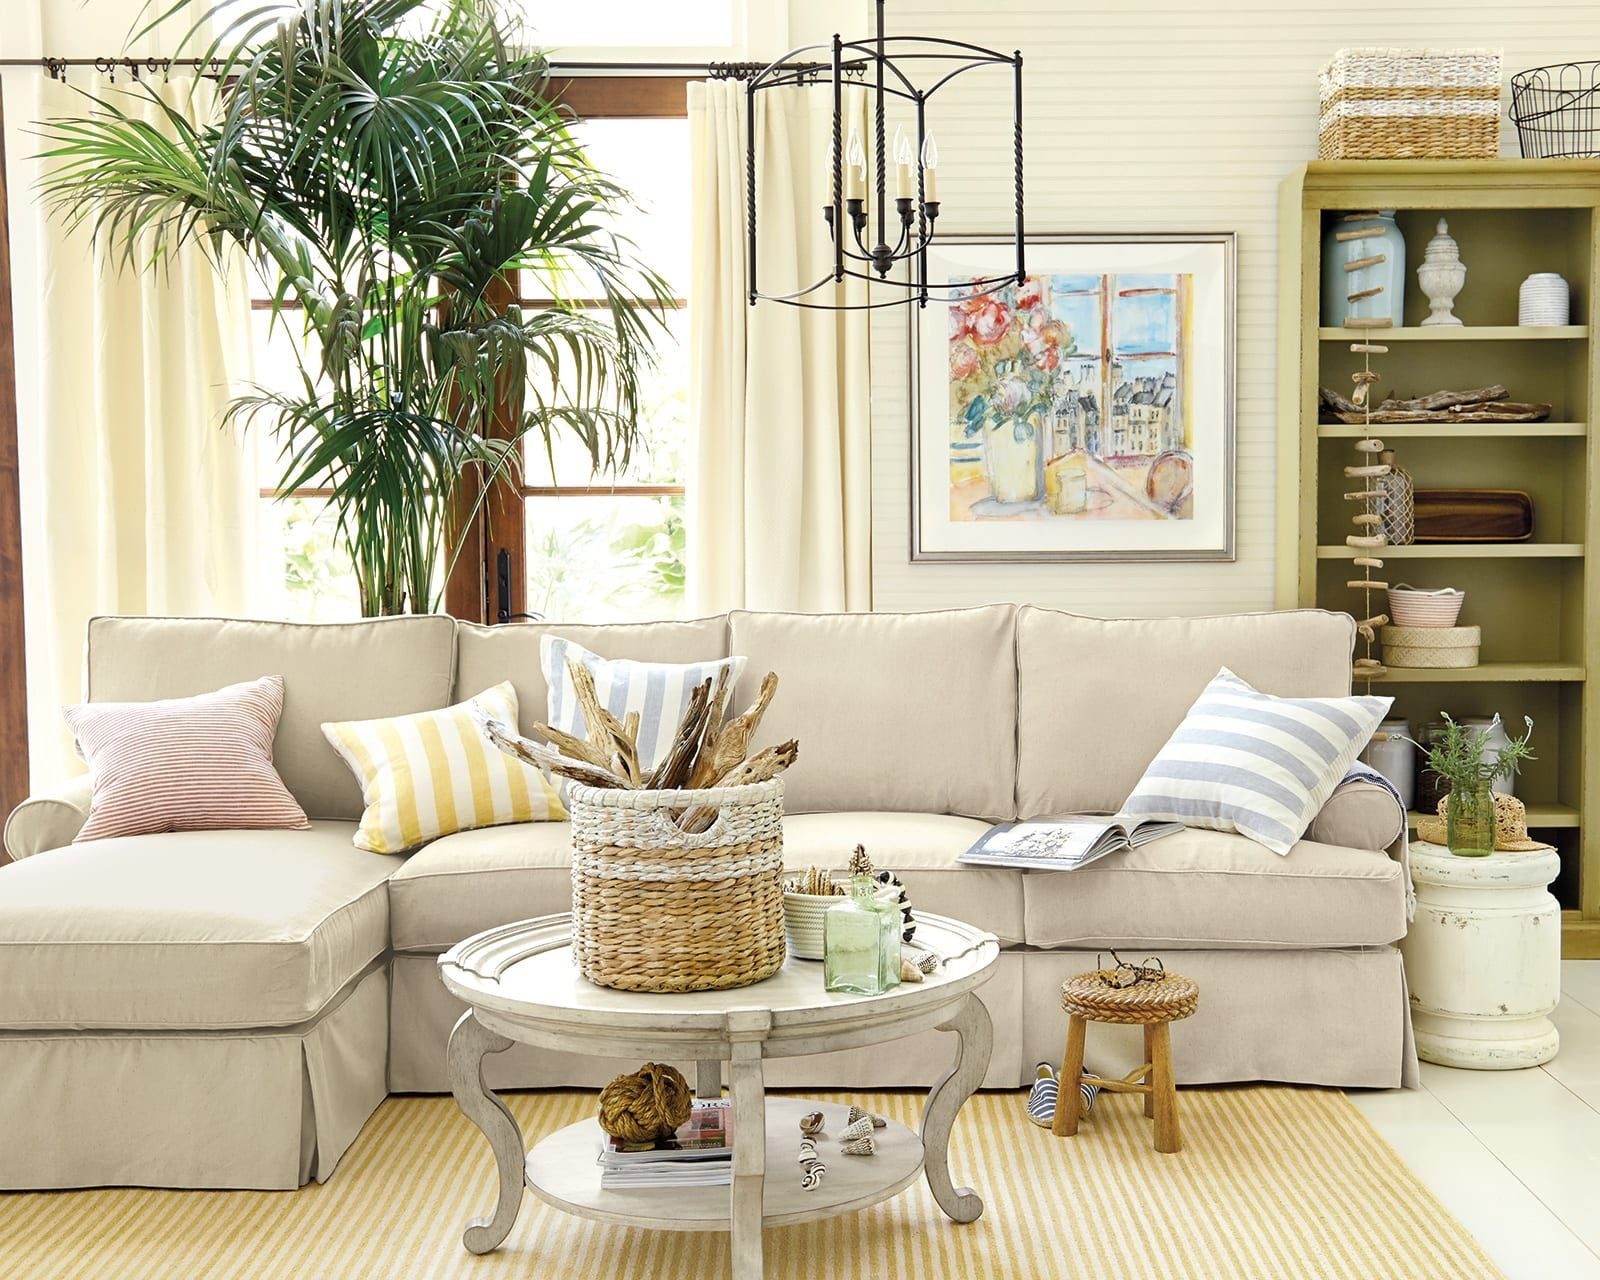 How To Match A Coffee Table To Your Sectional How To Decorate Living Room Decor Sectional Coffee Table Living Room Furniture [ 1280 x 1600 Pixel ]